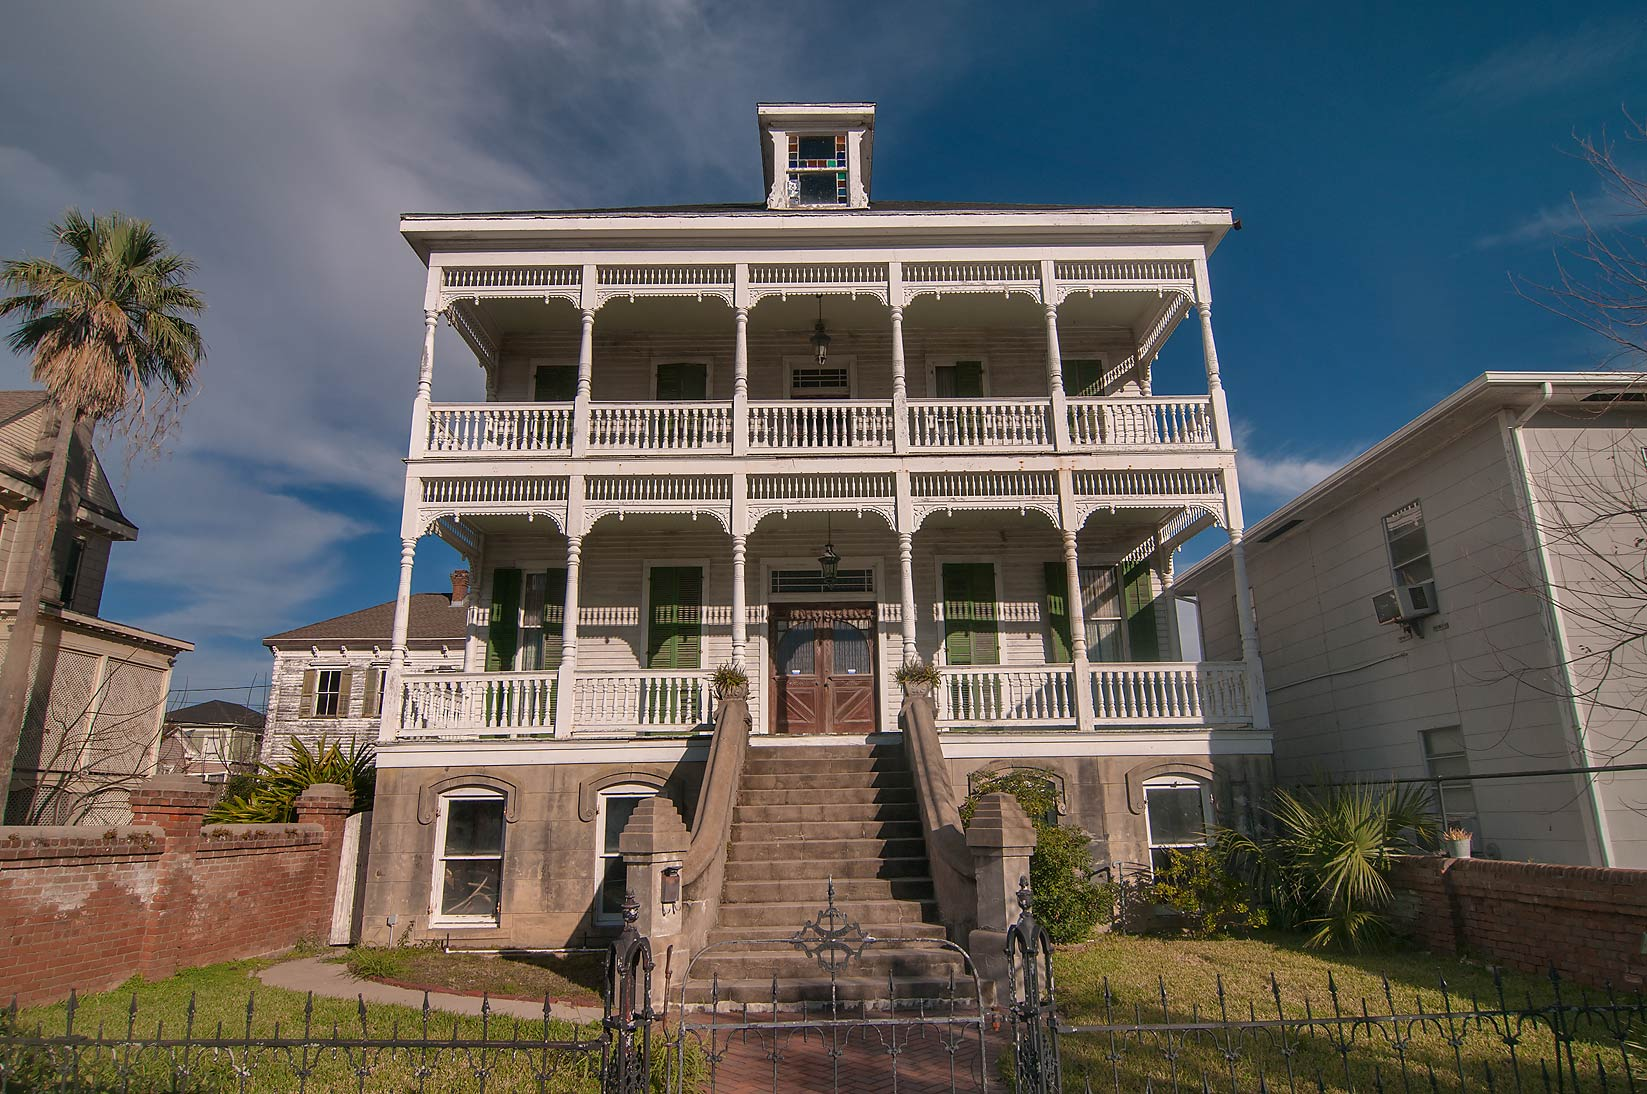 A house at 1718 Sealy St. in East End Historic District. Galveston, Texas